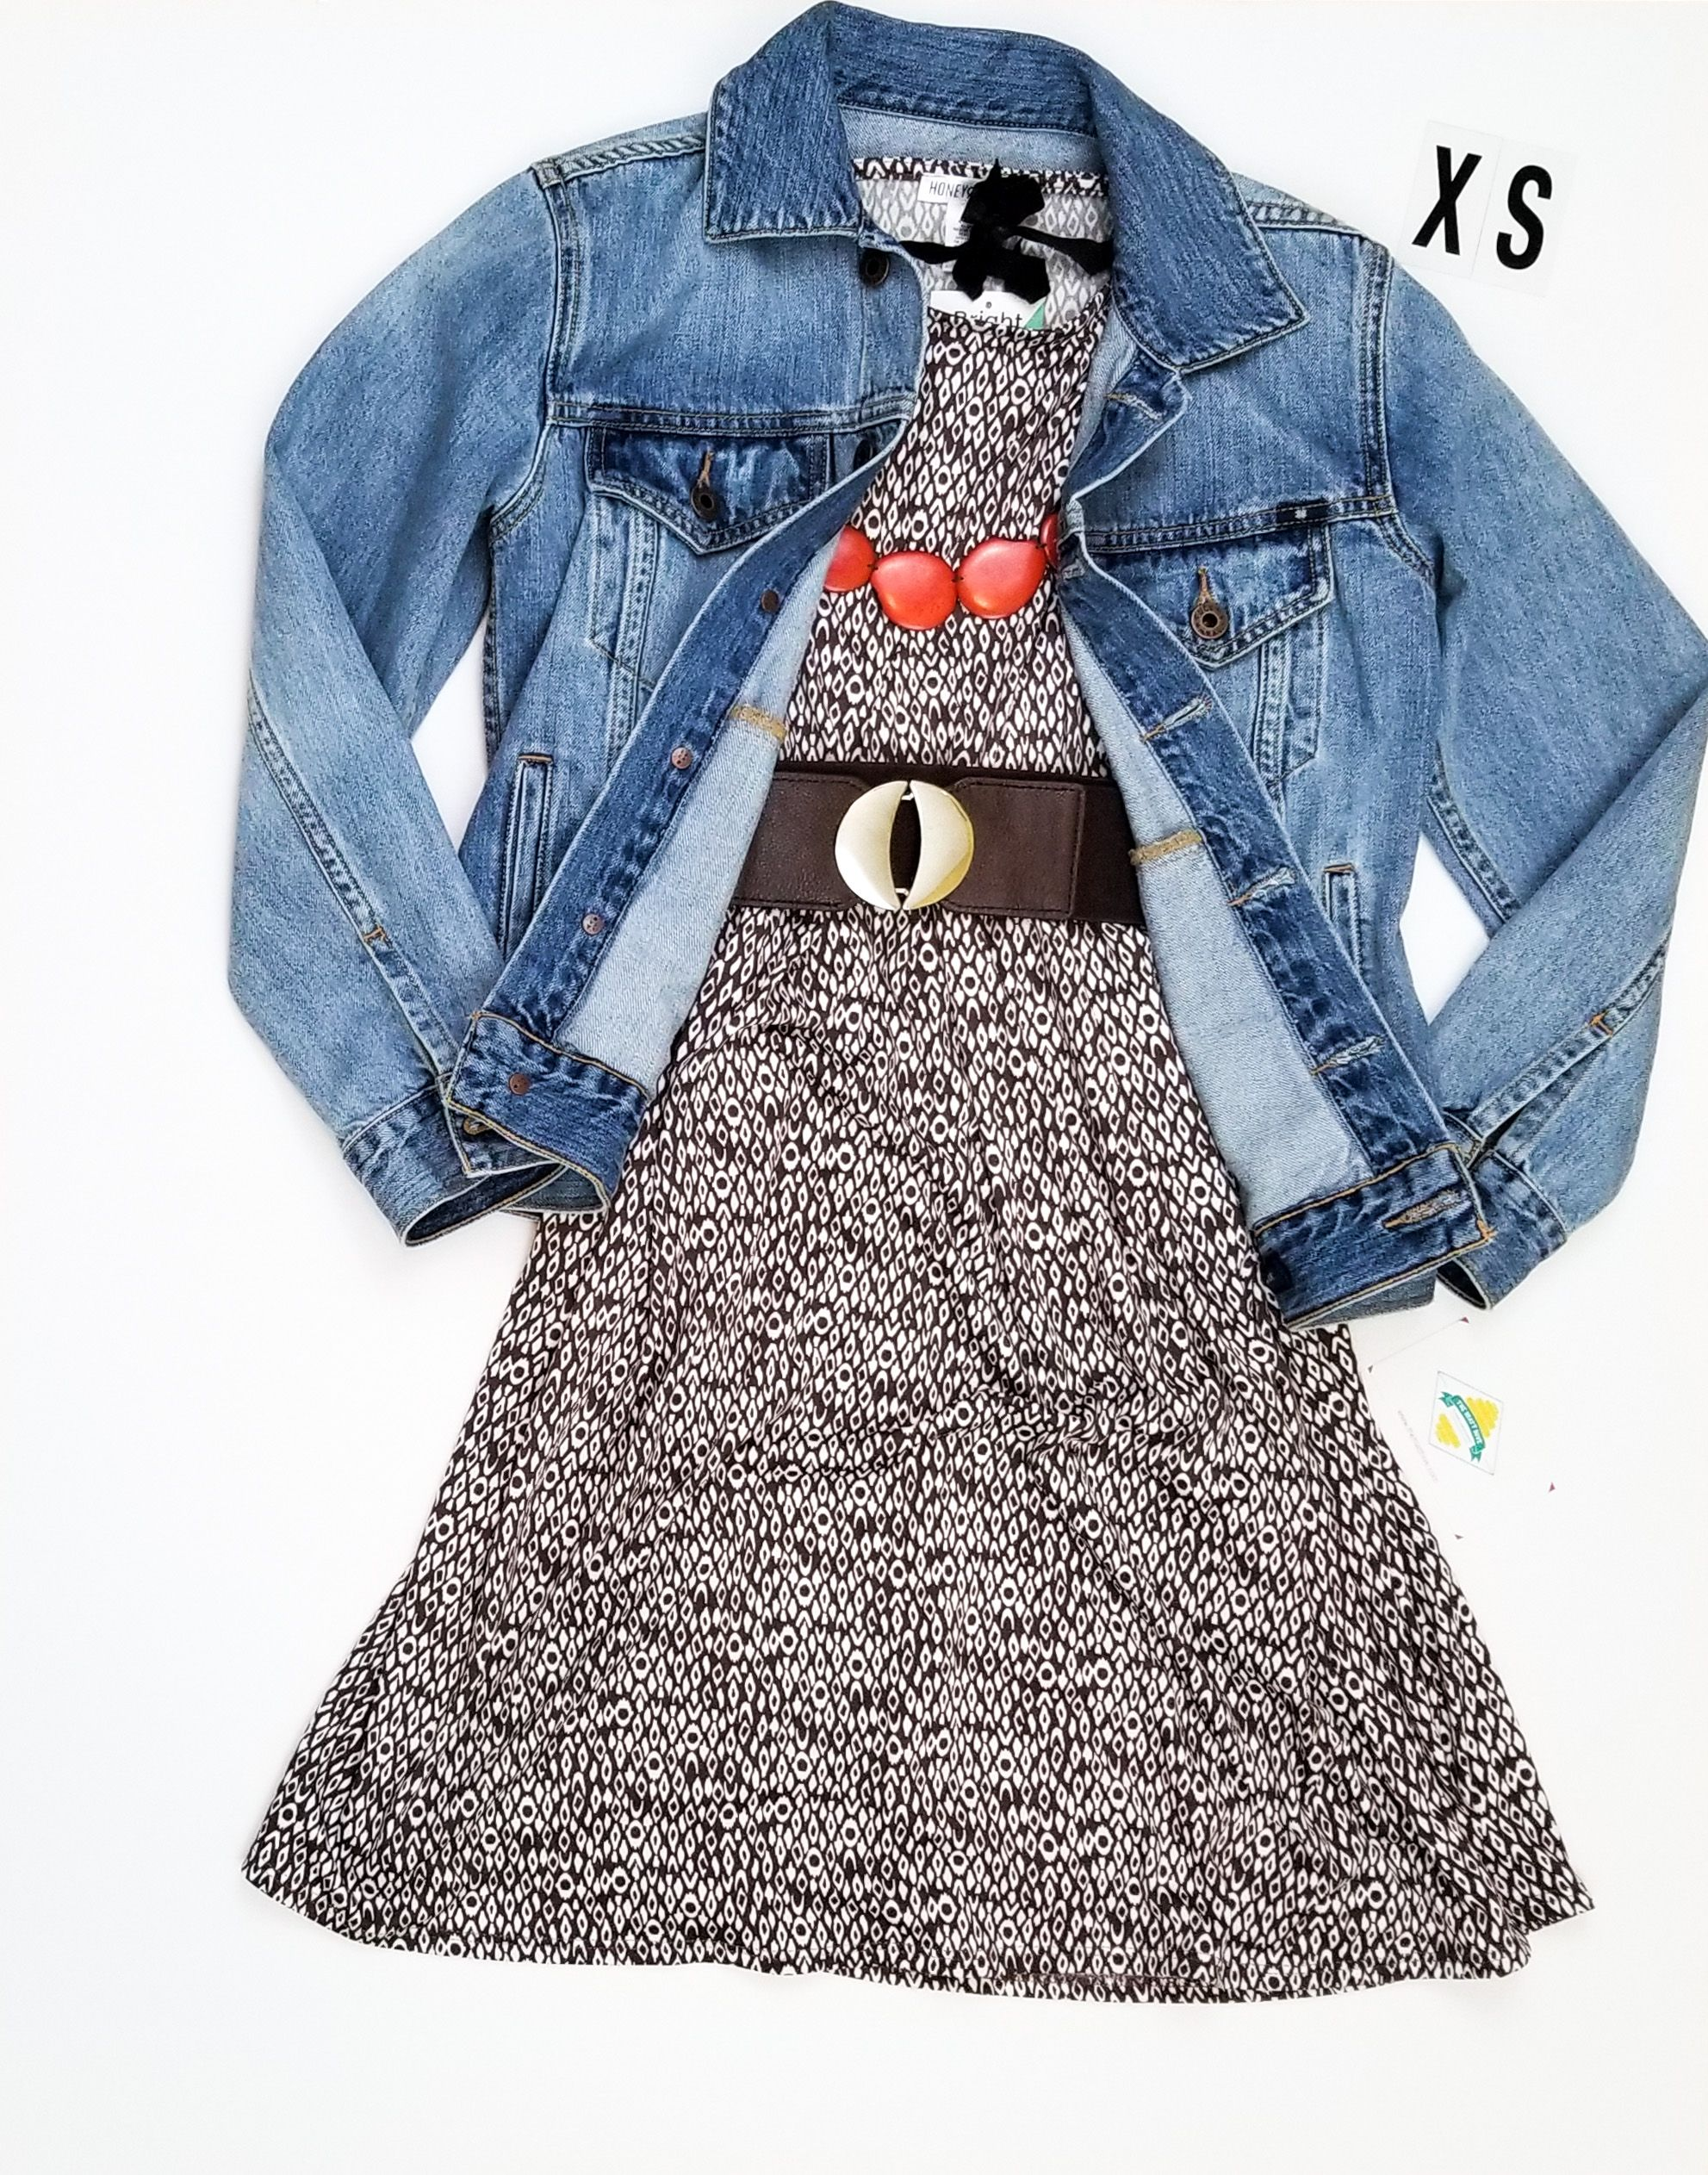 9e01a140c0d7 Piphany (P!phany) Windsor dress styled with a jean jacket and belt.   piphany  piphanystylist